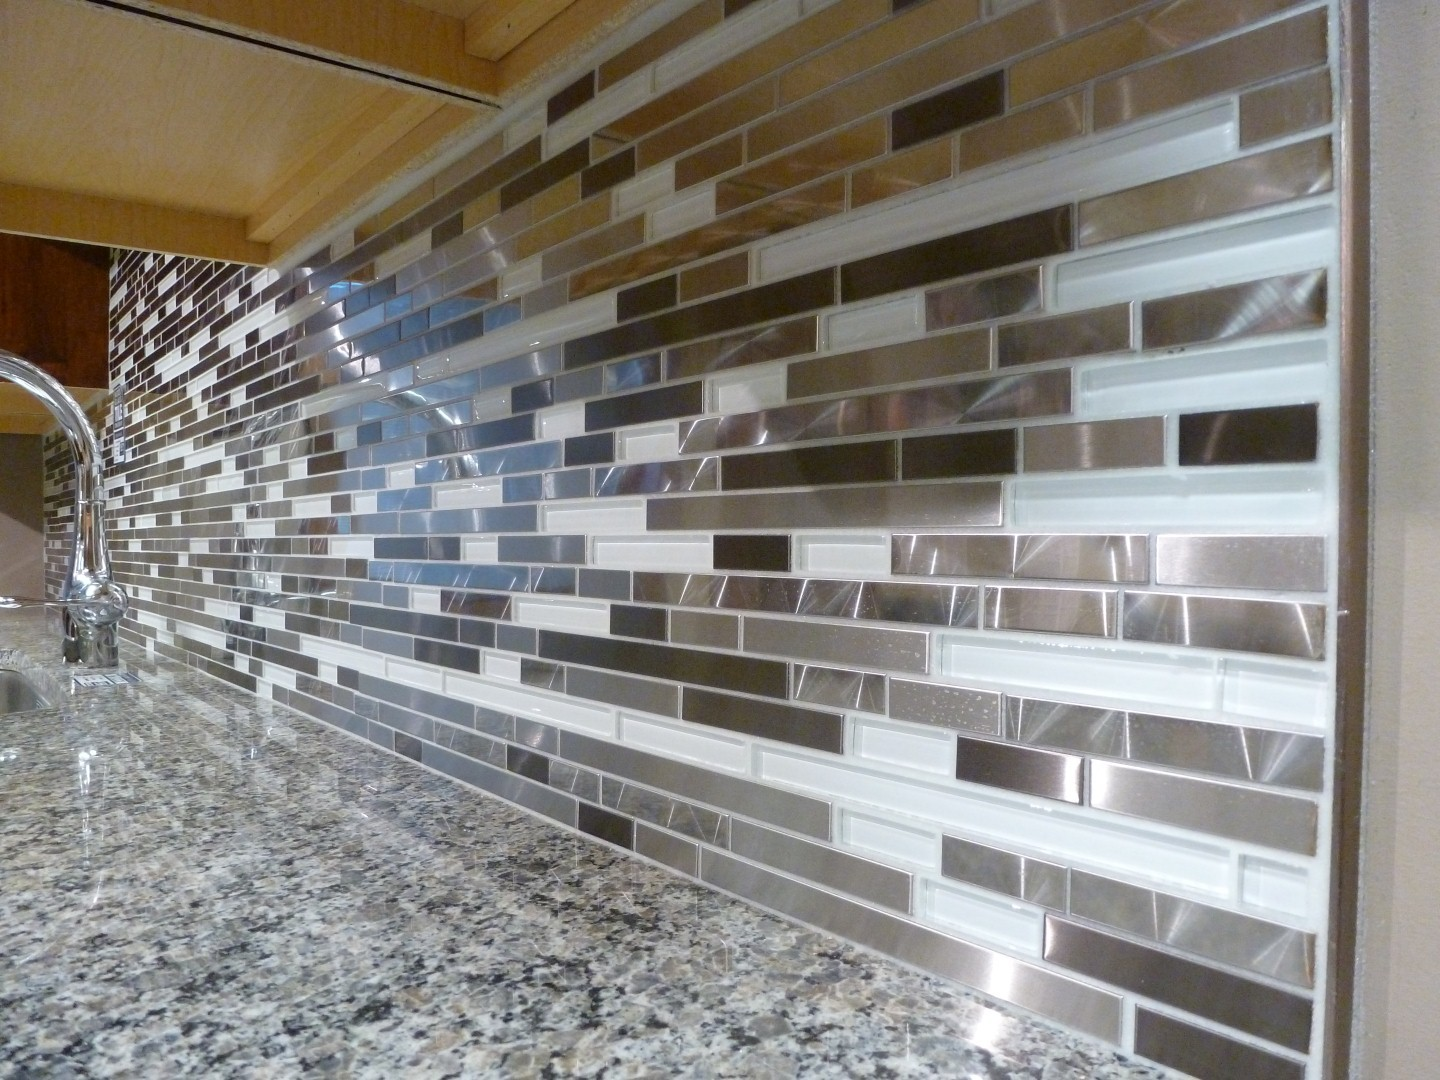 Kitchen archives panther pacific Backsplash tile installation